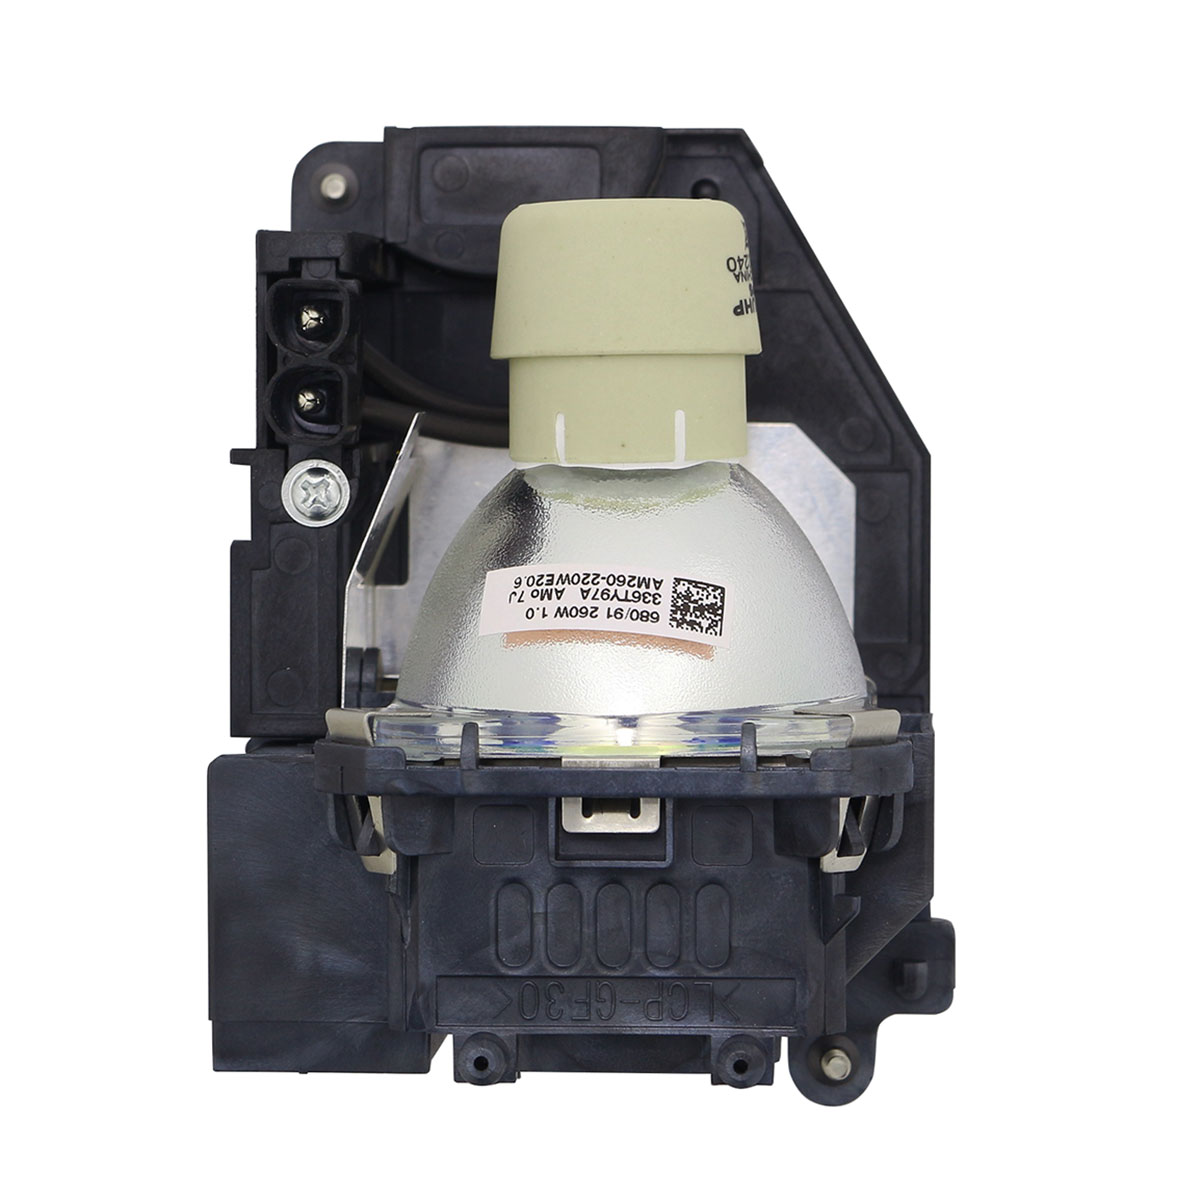 Lutema Economy Bulb for NEC NP-UM330WiJL Projector (Lamp Only) - image 1 of 5